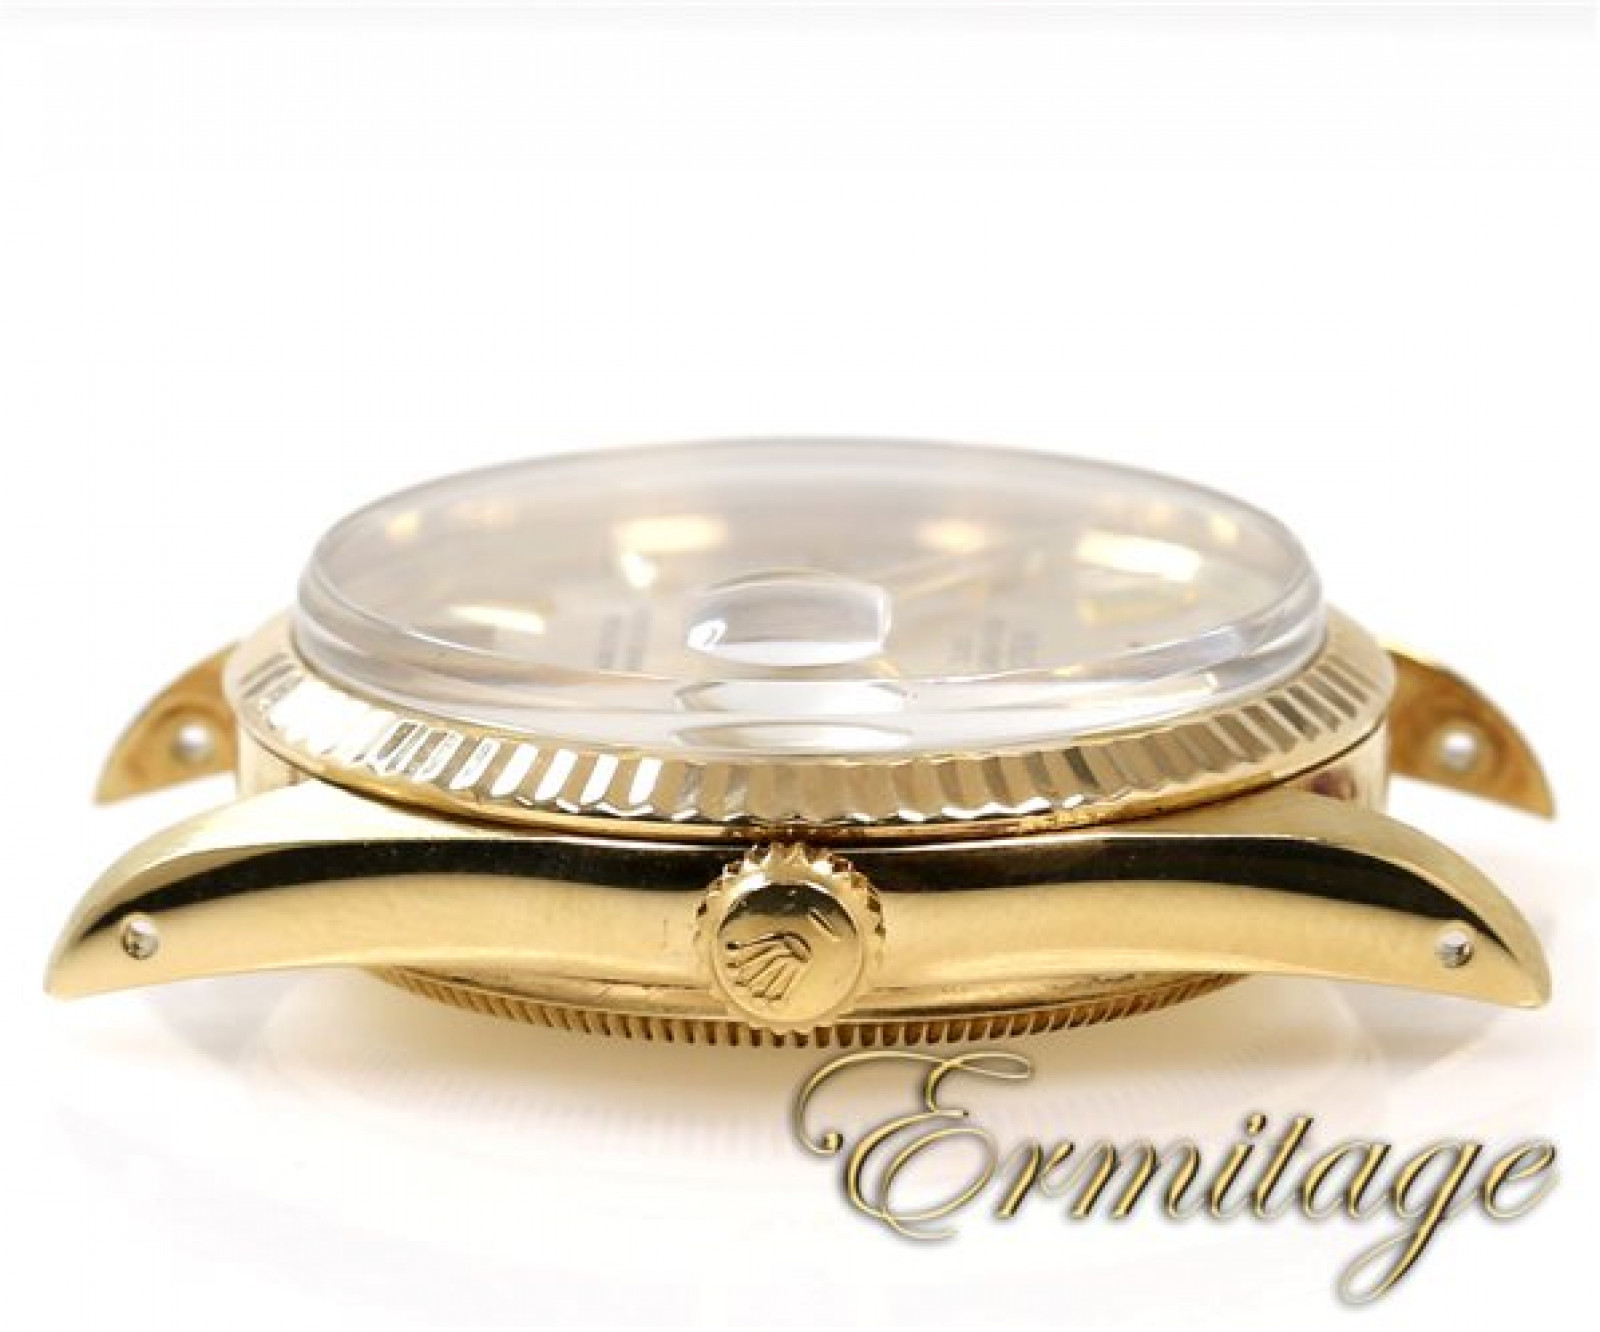 Pre-Owned Rolex Oyster Perpetual Date 15037 Gold